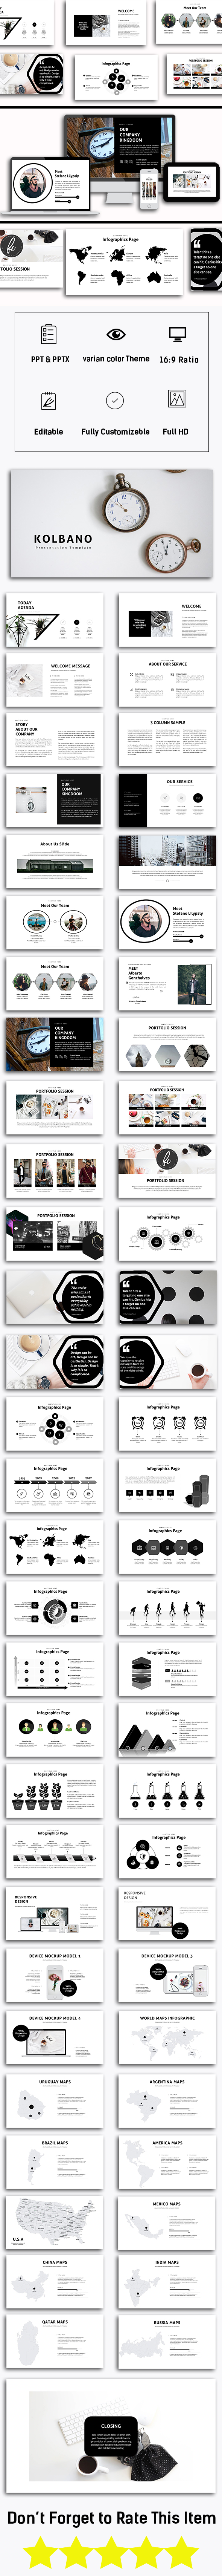 Kalbano Business Presentation - PowerPoint Templates Presentation Templates